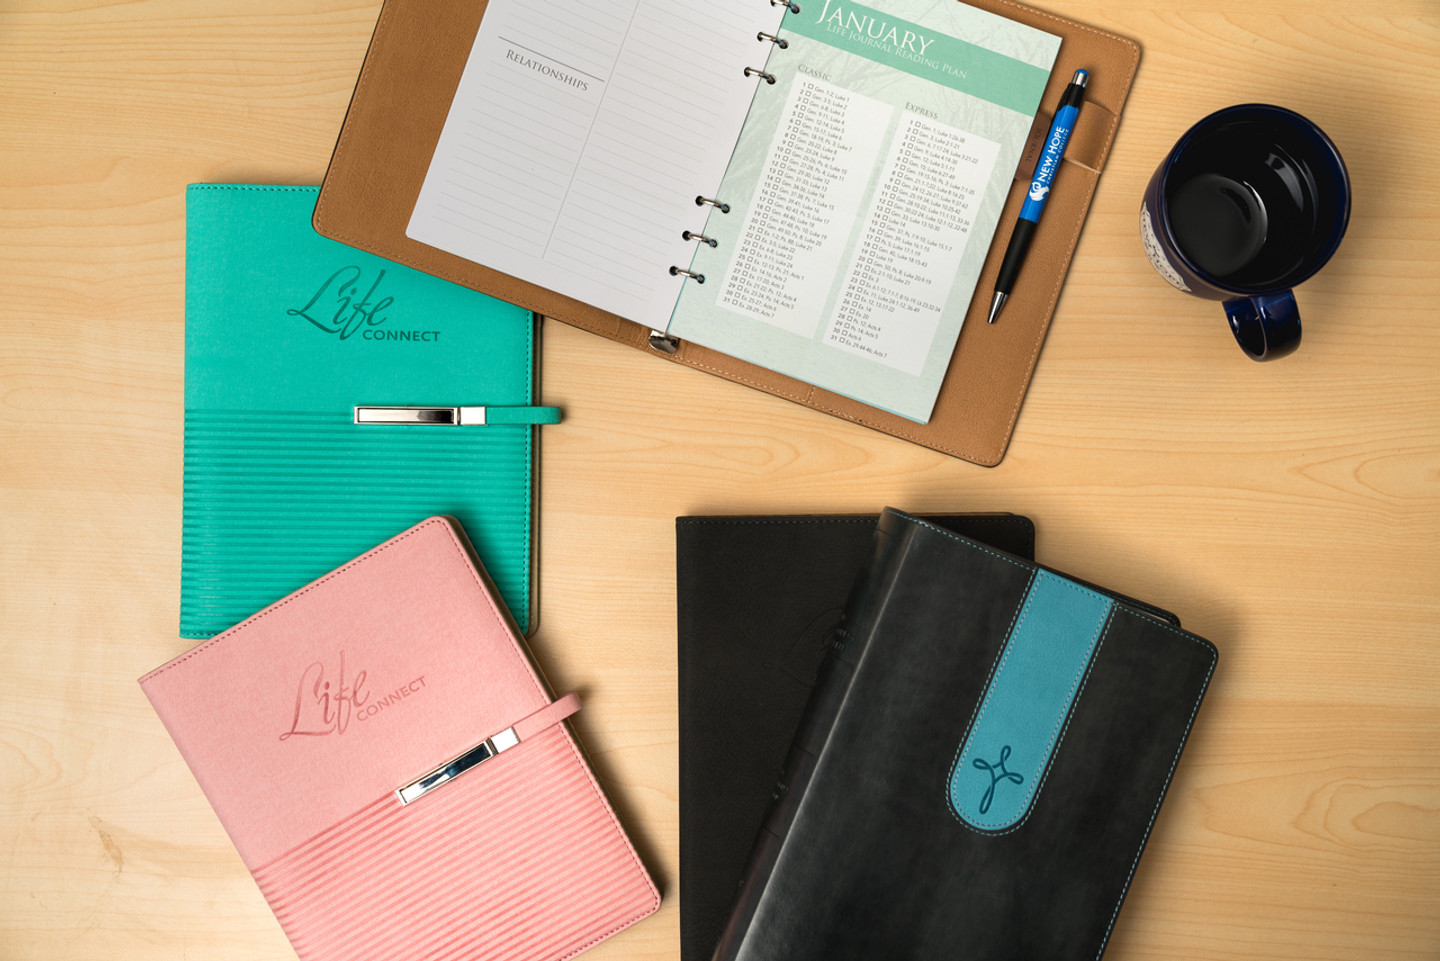 Life Connect - 6 Ring Calendar & Journal (2018)